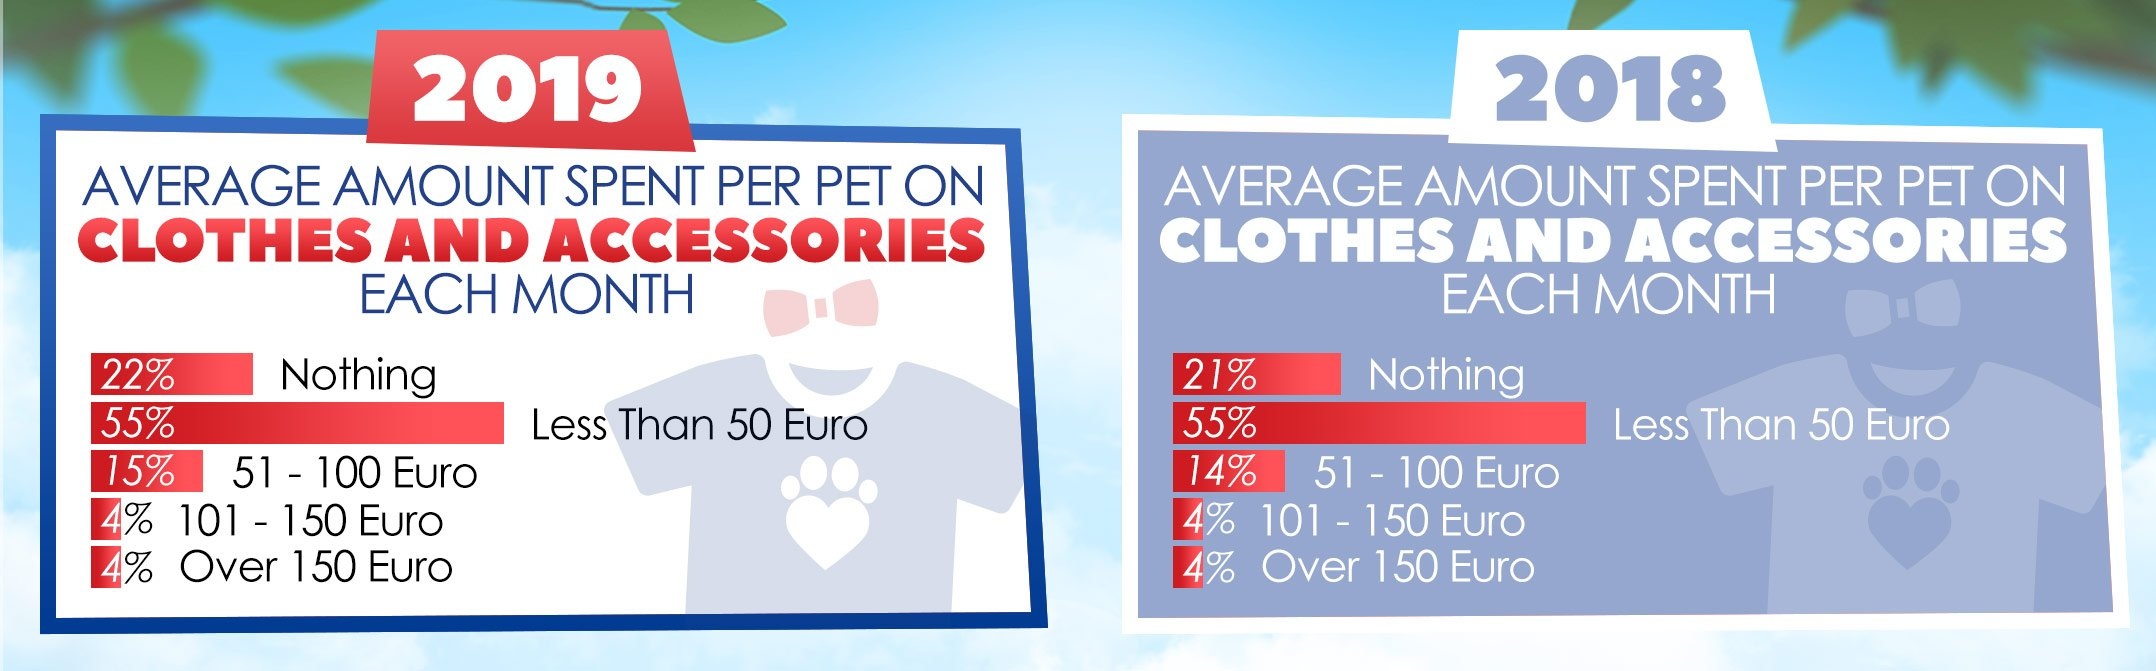 Pet Spend on Clothing